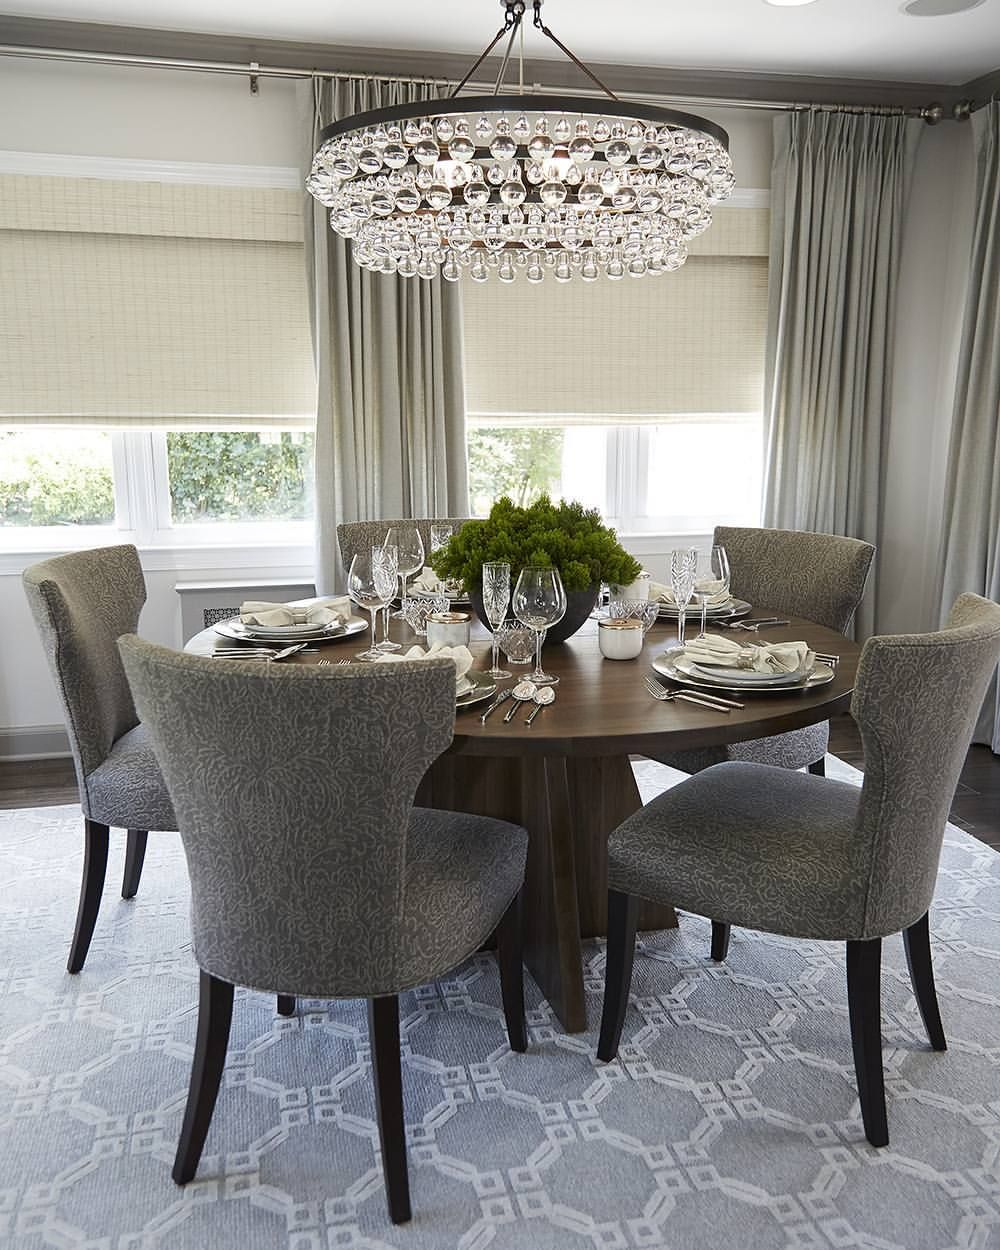 2 092 Likes 26 Comments Property Brothers Propertybrothers On Instagram A Statement Piece Can Unique Dining Room Luxury Dining Luxury Dining Room